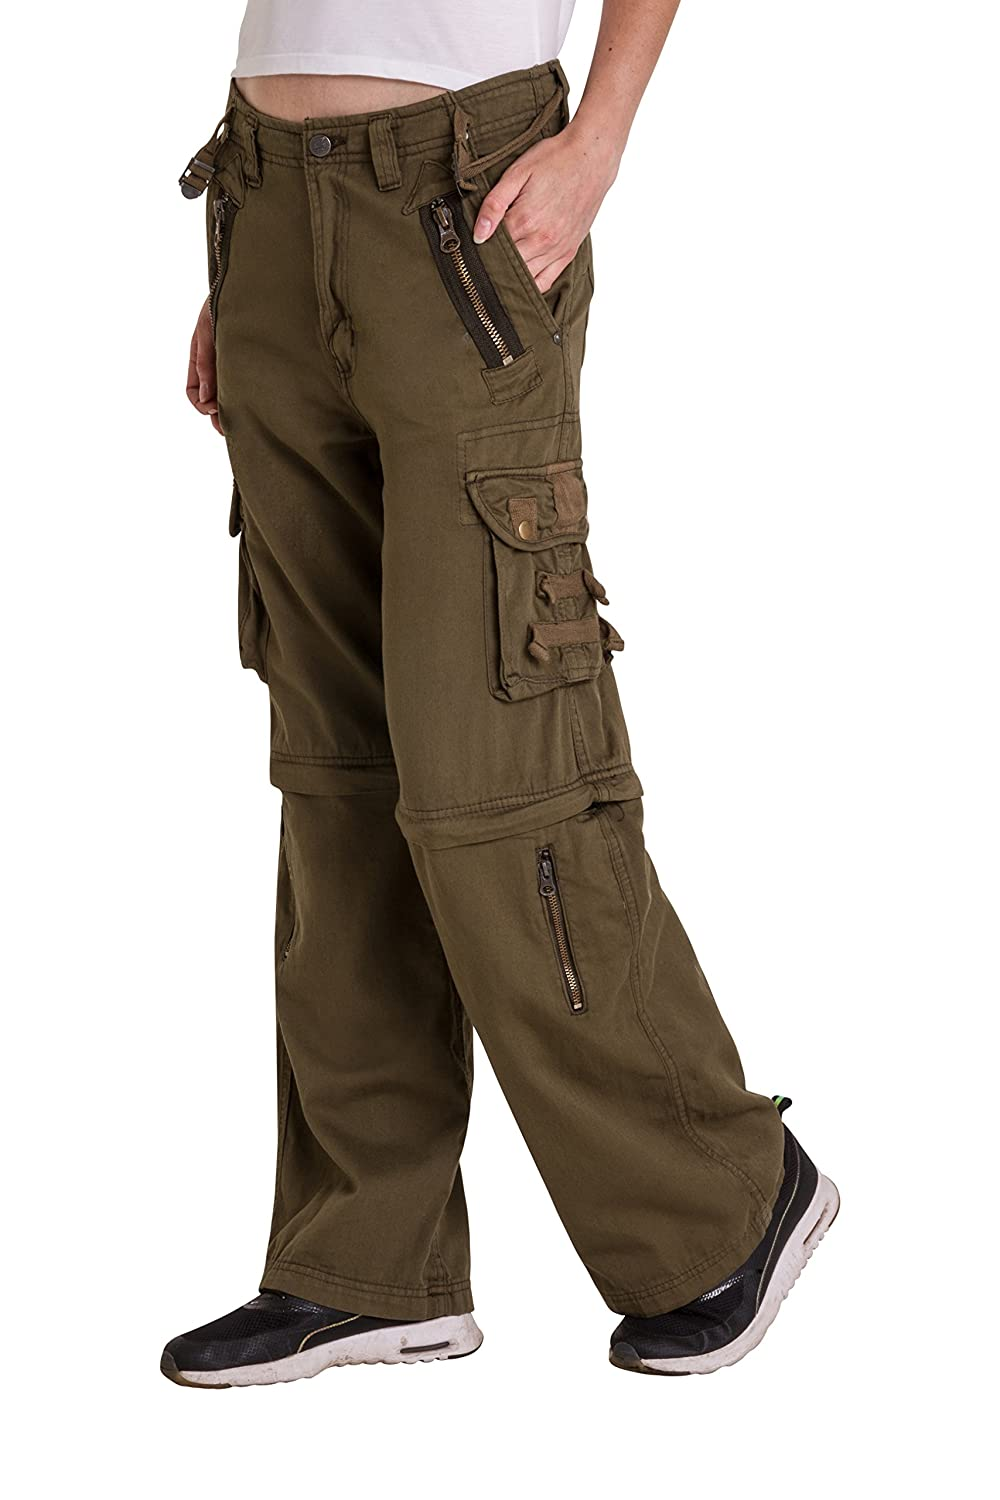 Qaswa Women Convertible Trousers Multi Pockets Casual Cargo Army Military Ladies Outdoor Pants